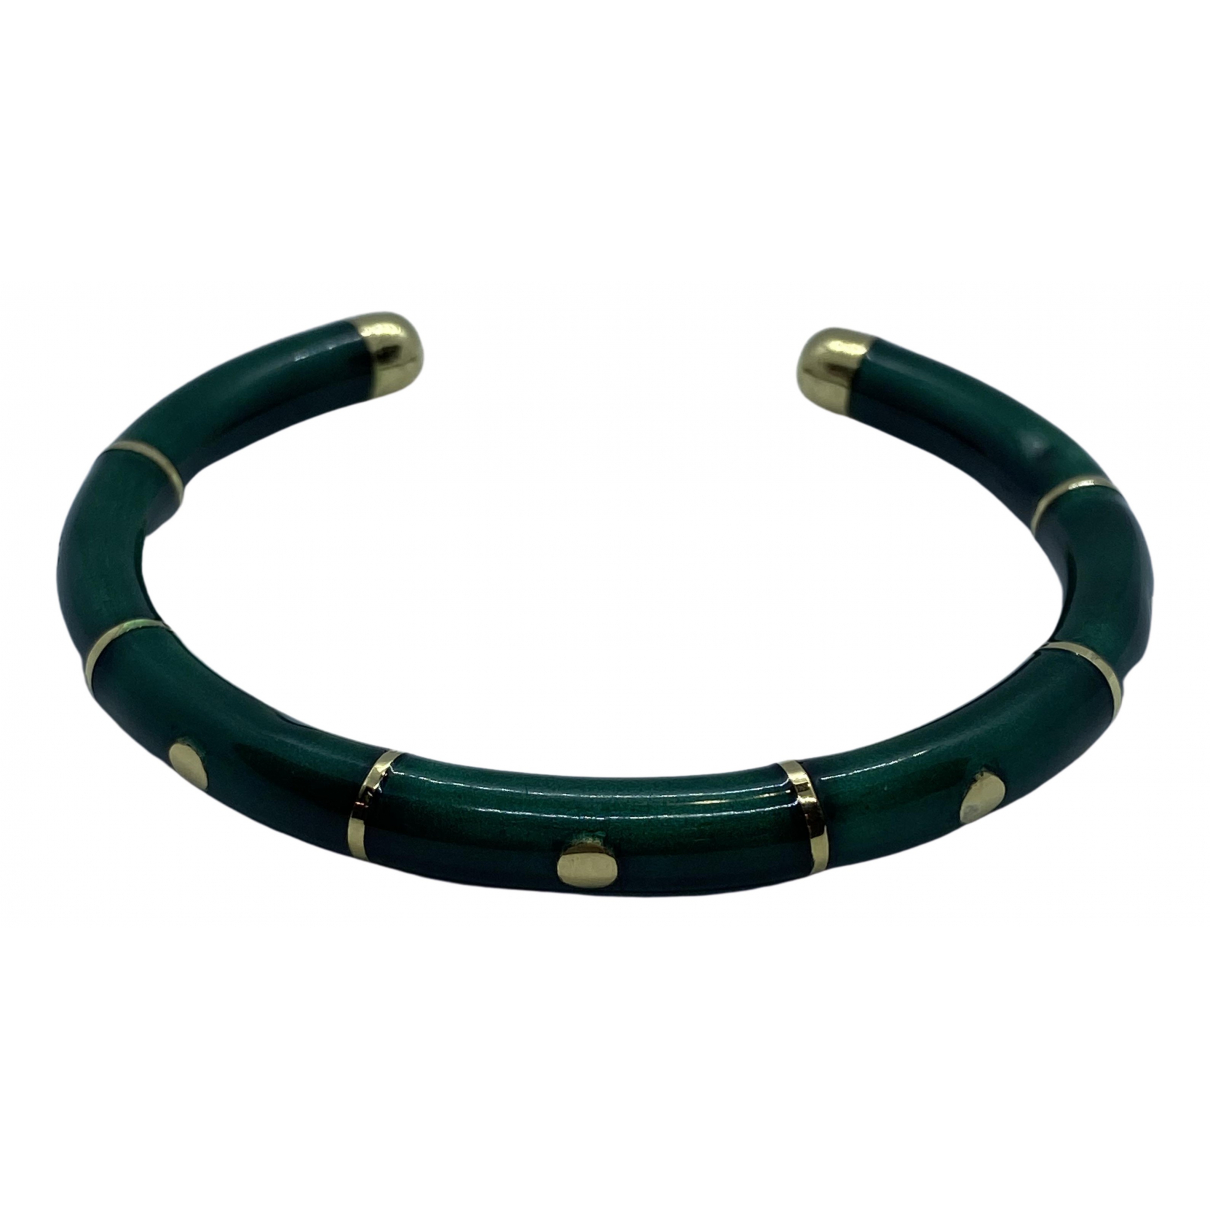 Non Signe / Unsigned Jonc Armband in  Gruen Gelbgold